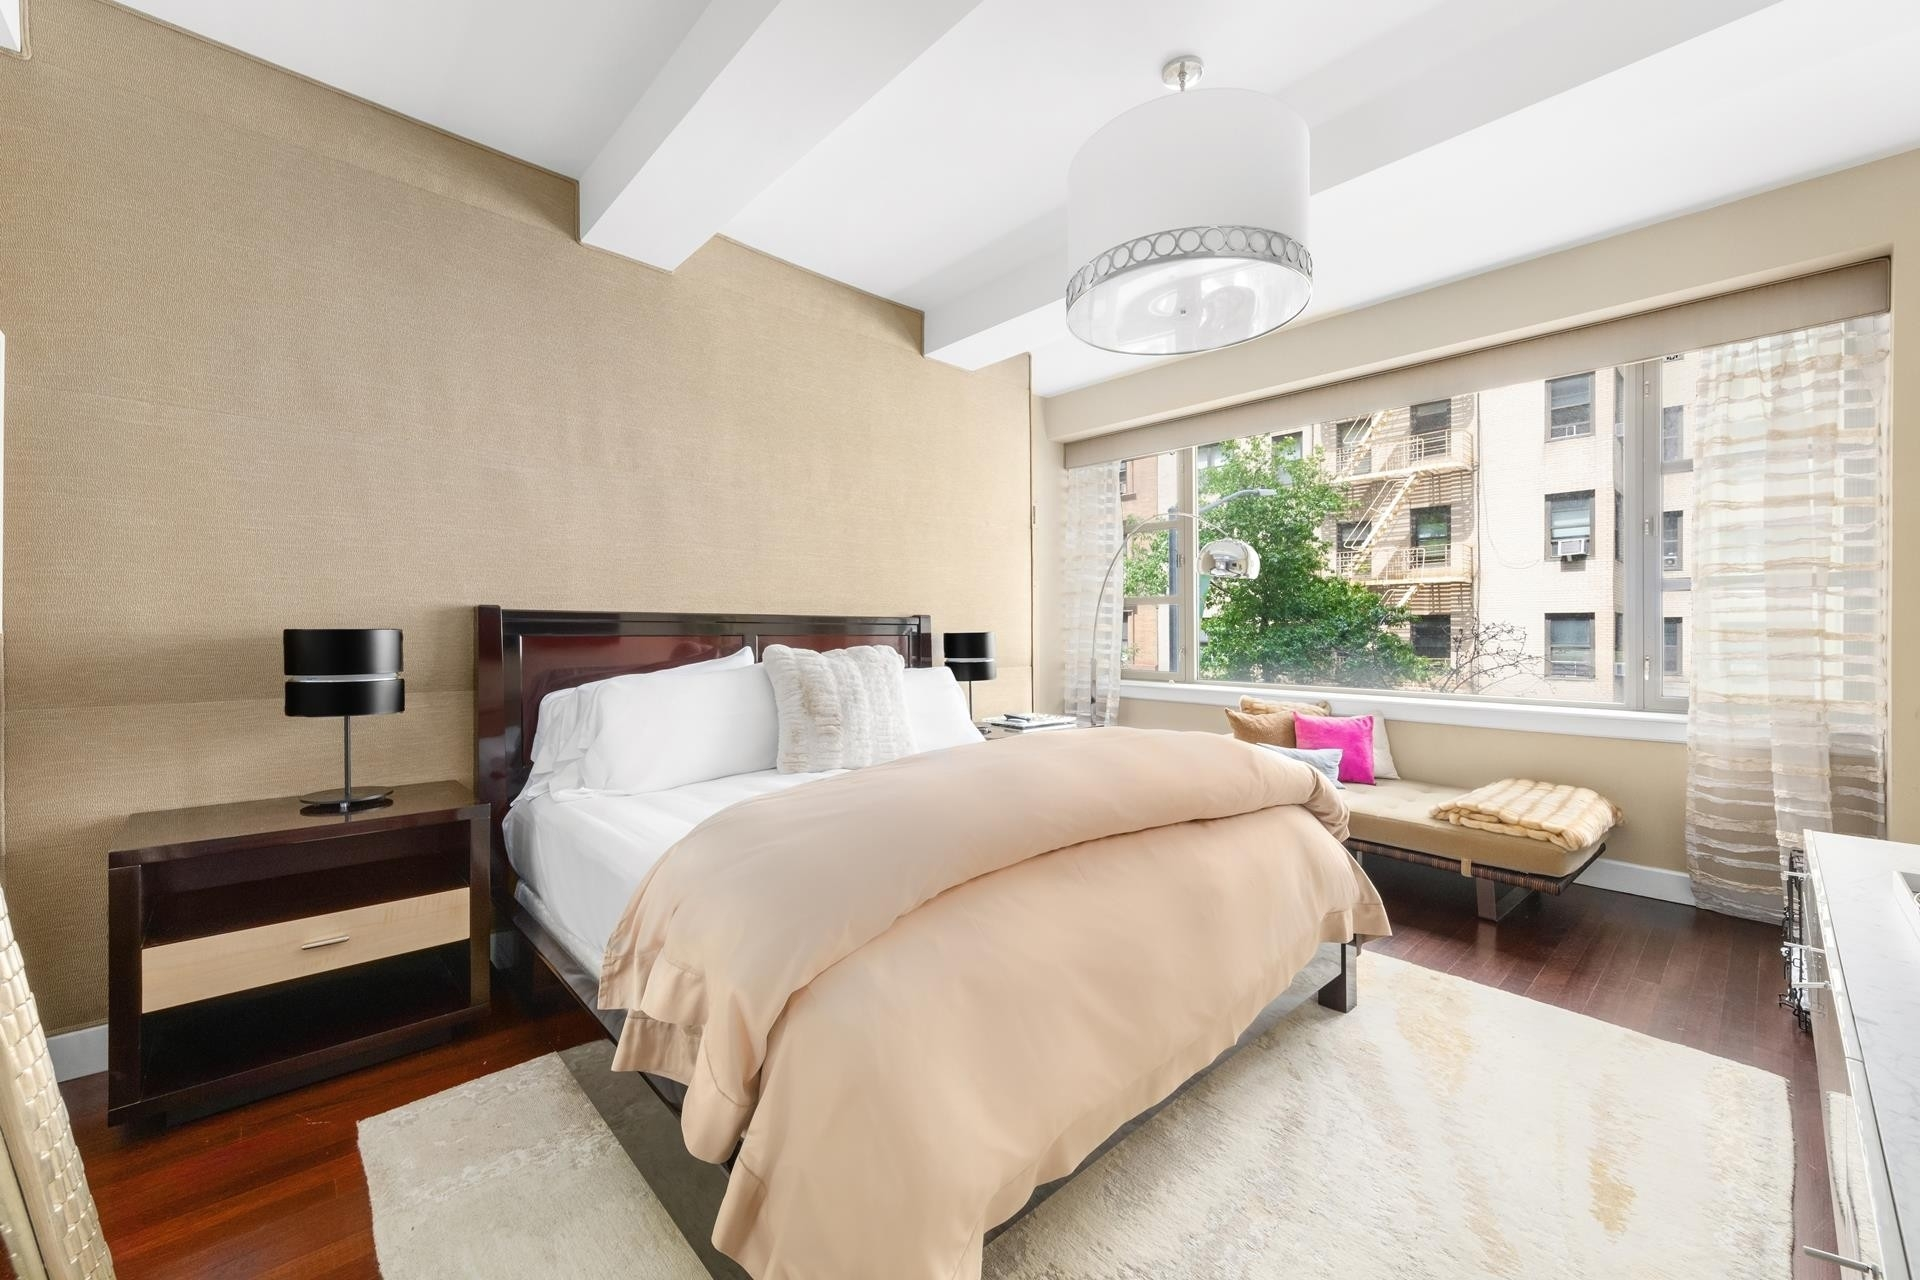 5. Condominiums for Sale at Liberty Lofts, 43 West 64th St, 3D Lincoln Square, New York, NY 10023